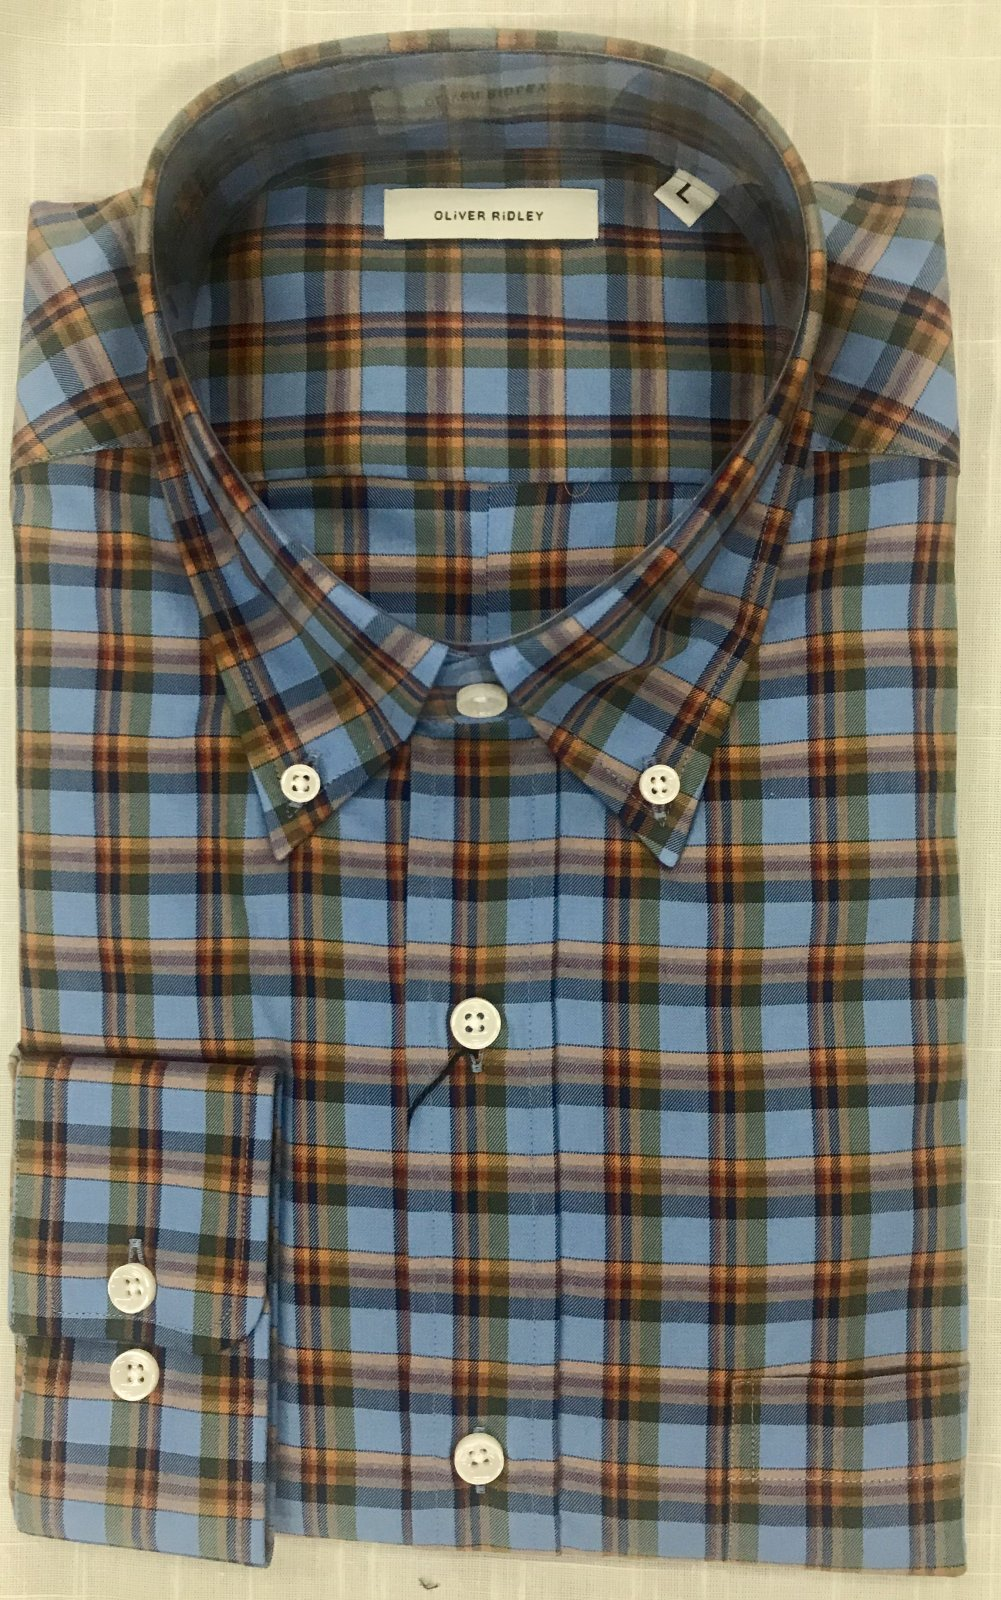 Oliver Ridley Clive Plaid Shirt